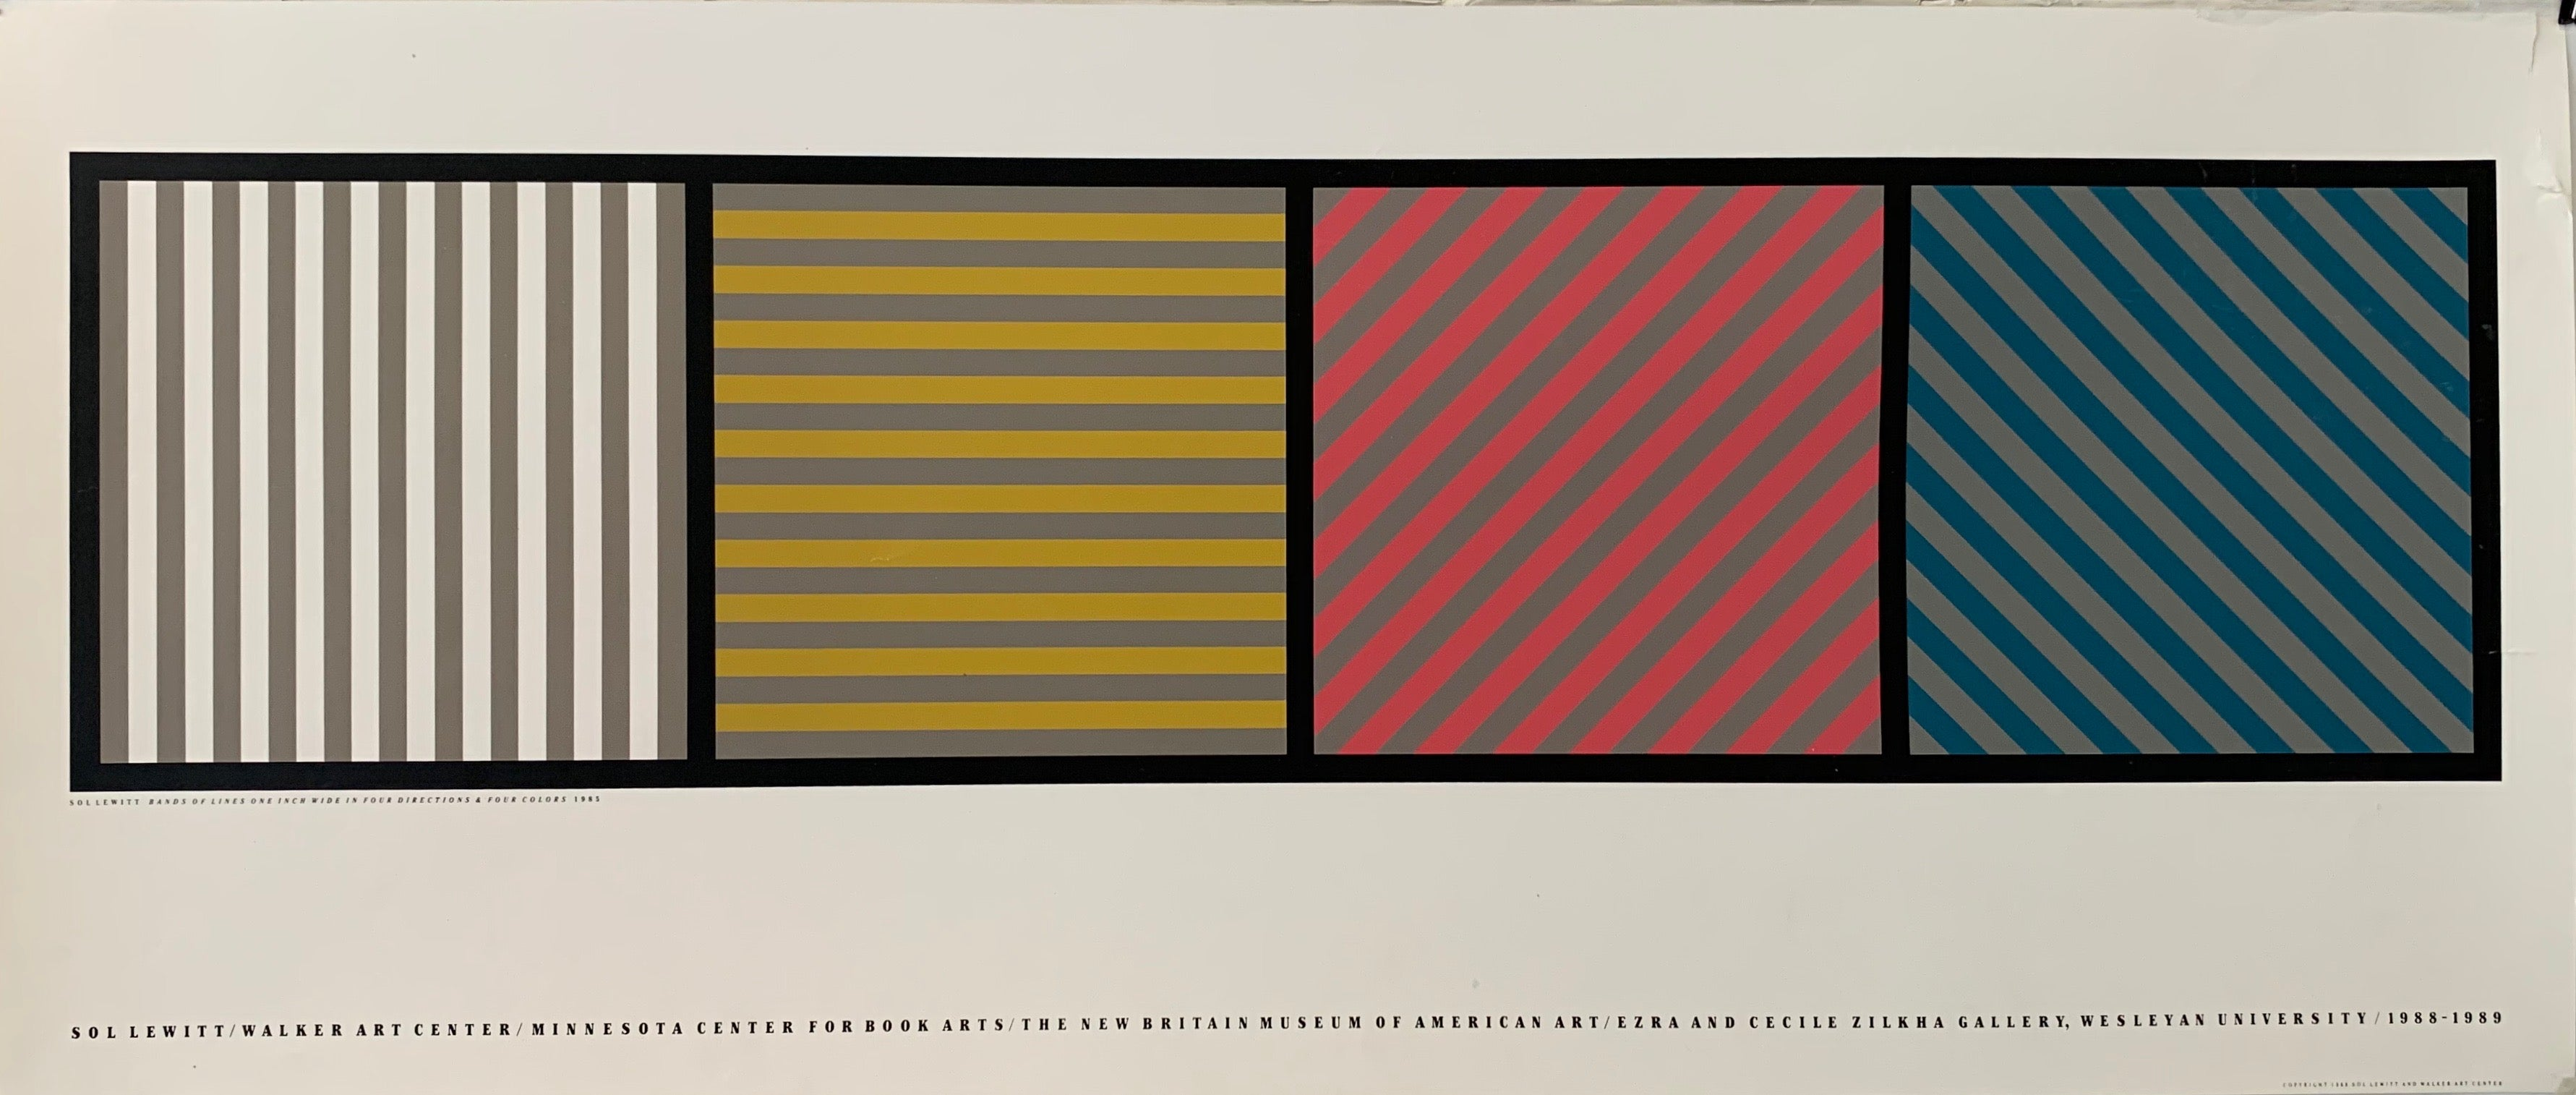 Sol LeWitt/Walker Art Center/ Minnesota Center for Book Arts/ The New Britain Museum of American Art / Erza and Cecile Zilha Gallery, Weslyan University / 1988-1989